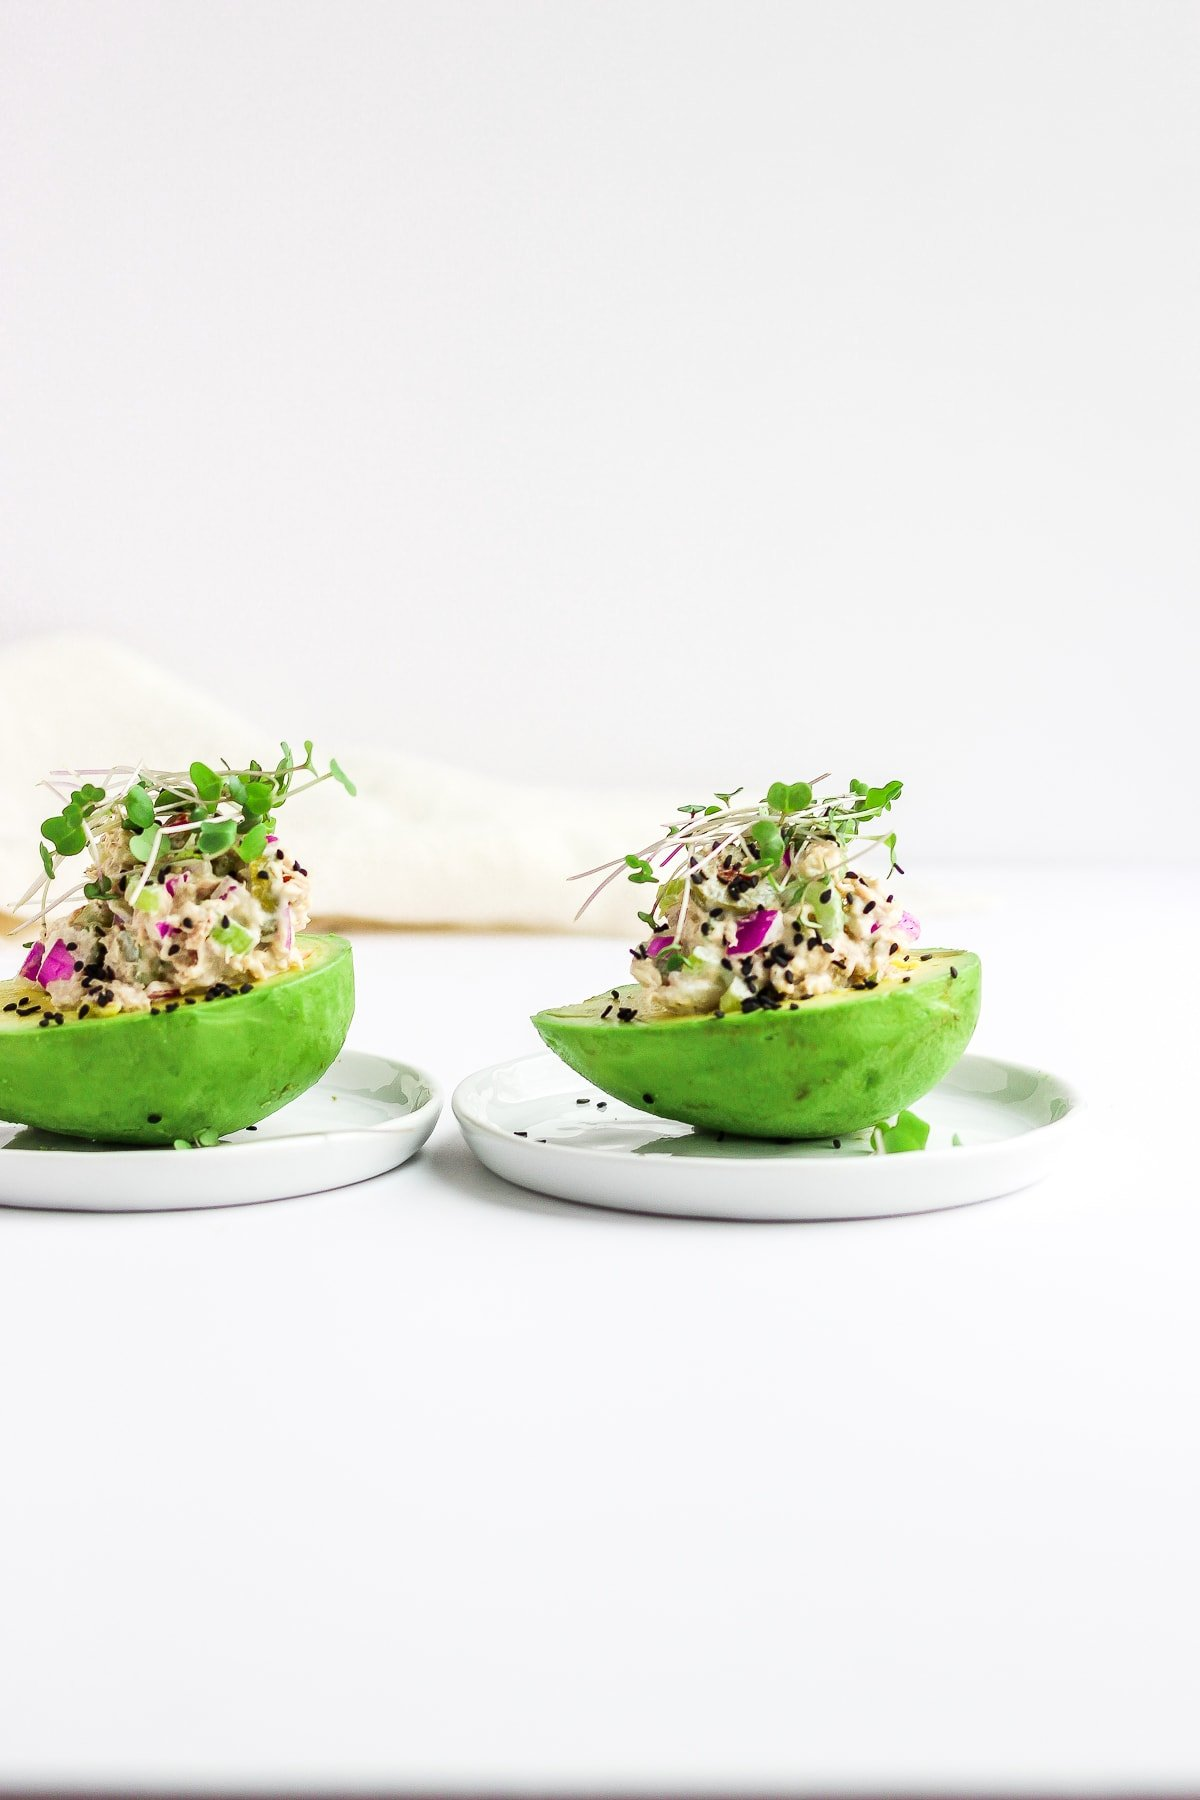 Healthy Tuna Salad - the perfect lunch that can be thrown together in 5 minutes! #healthytunasalad #tunasaladrecipe #easytunasalad #paleolunch #whole30lunch